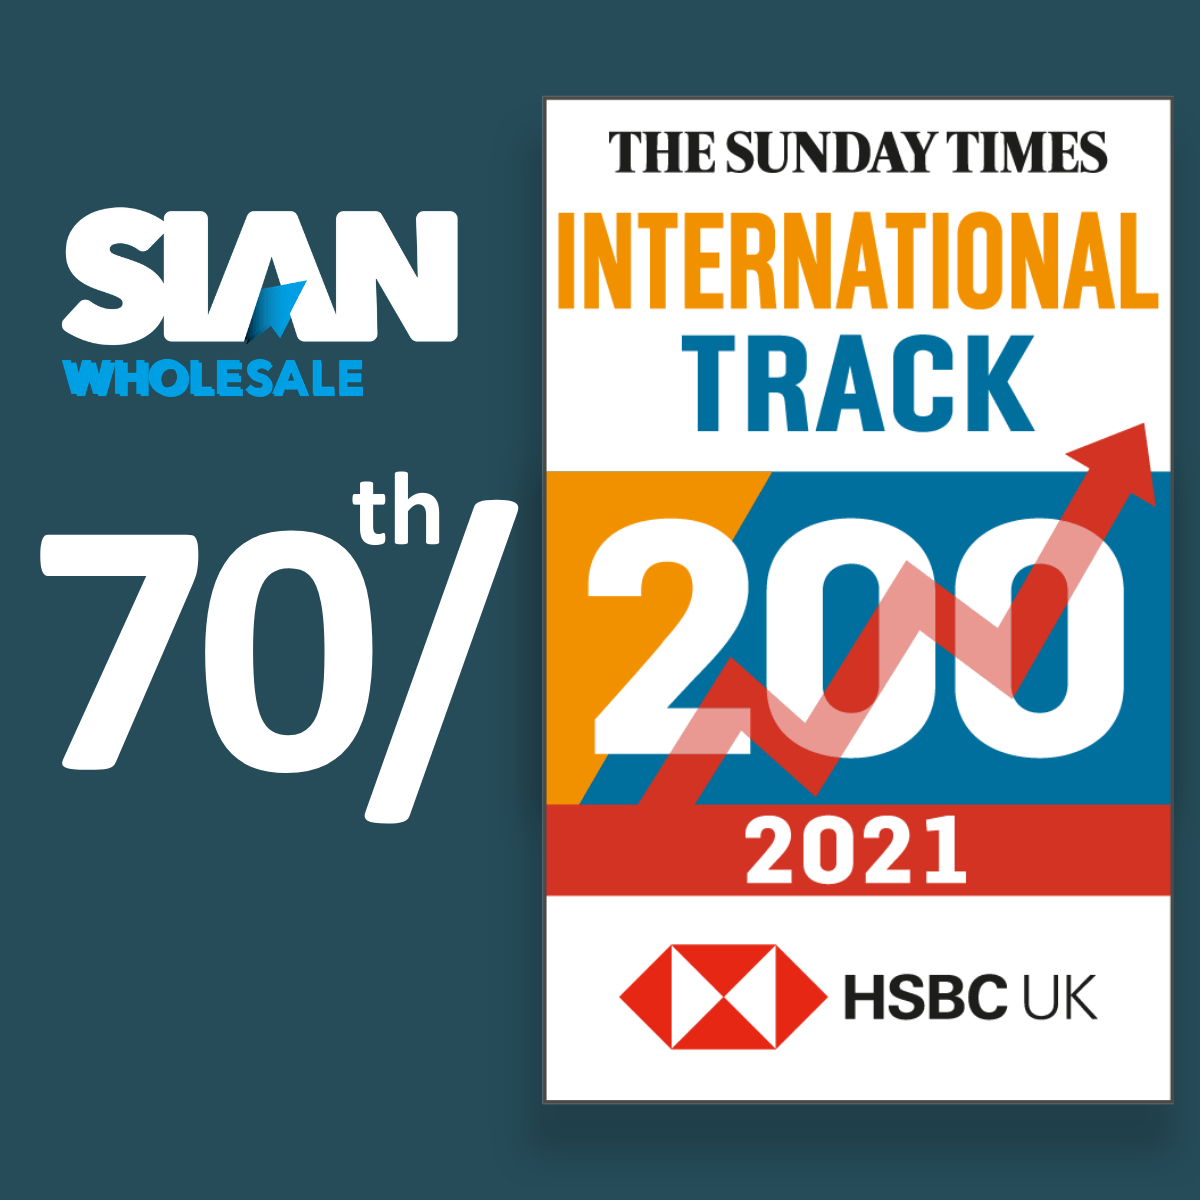 SIAN Wholesale places 70th in Award Winning Sunday Times fastest growing companies